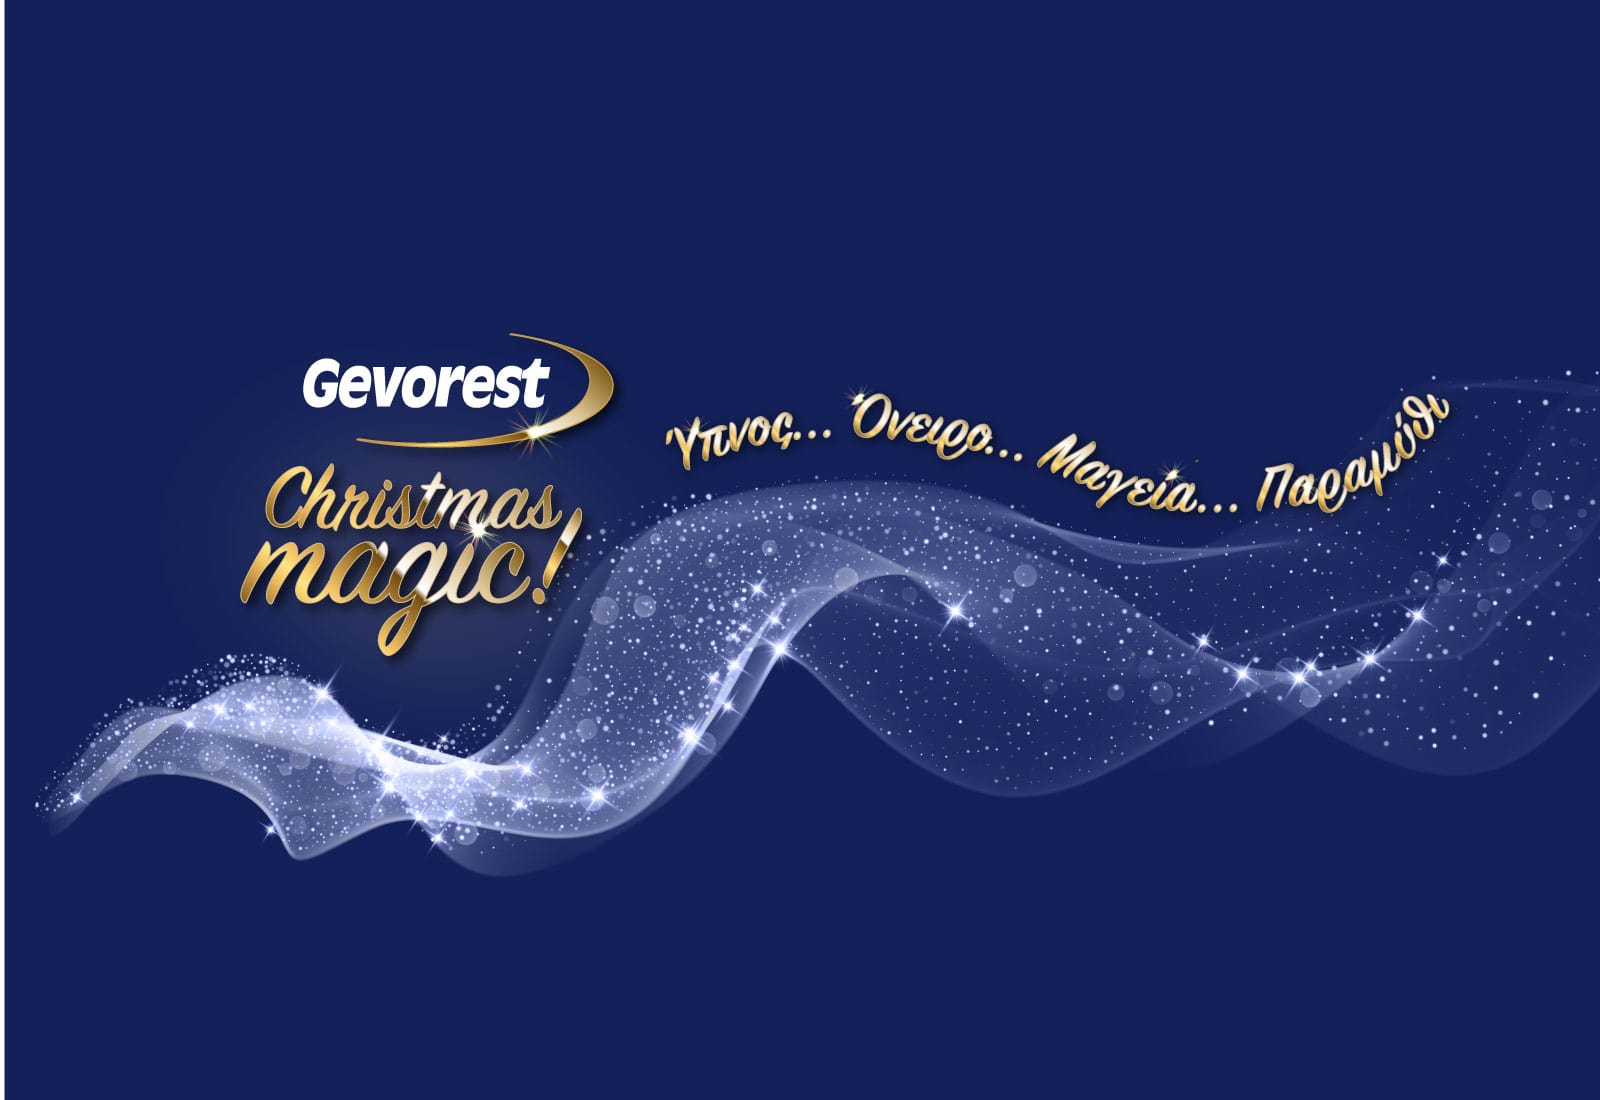 Gevorest Christmas Magic 2019 1